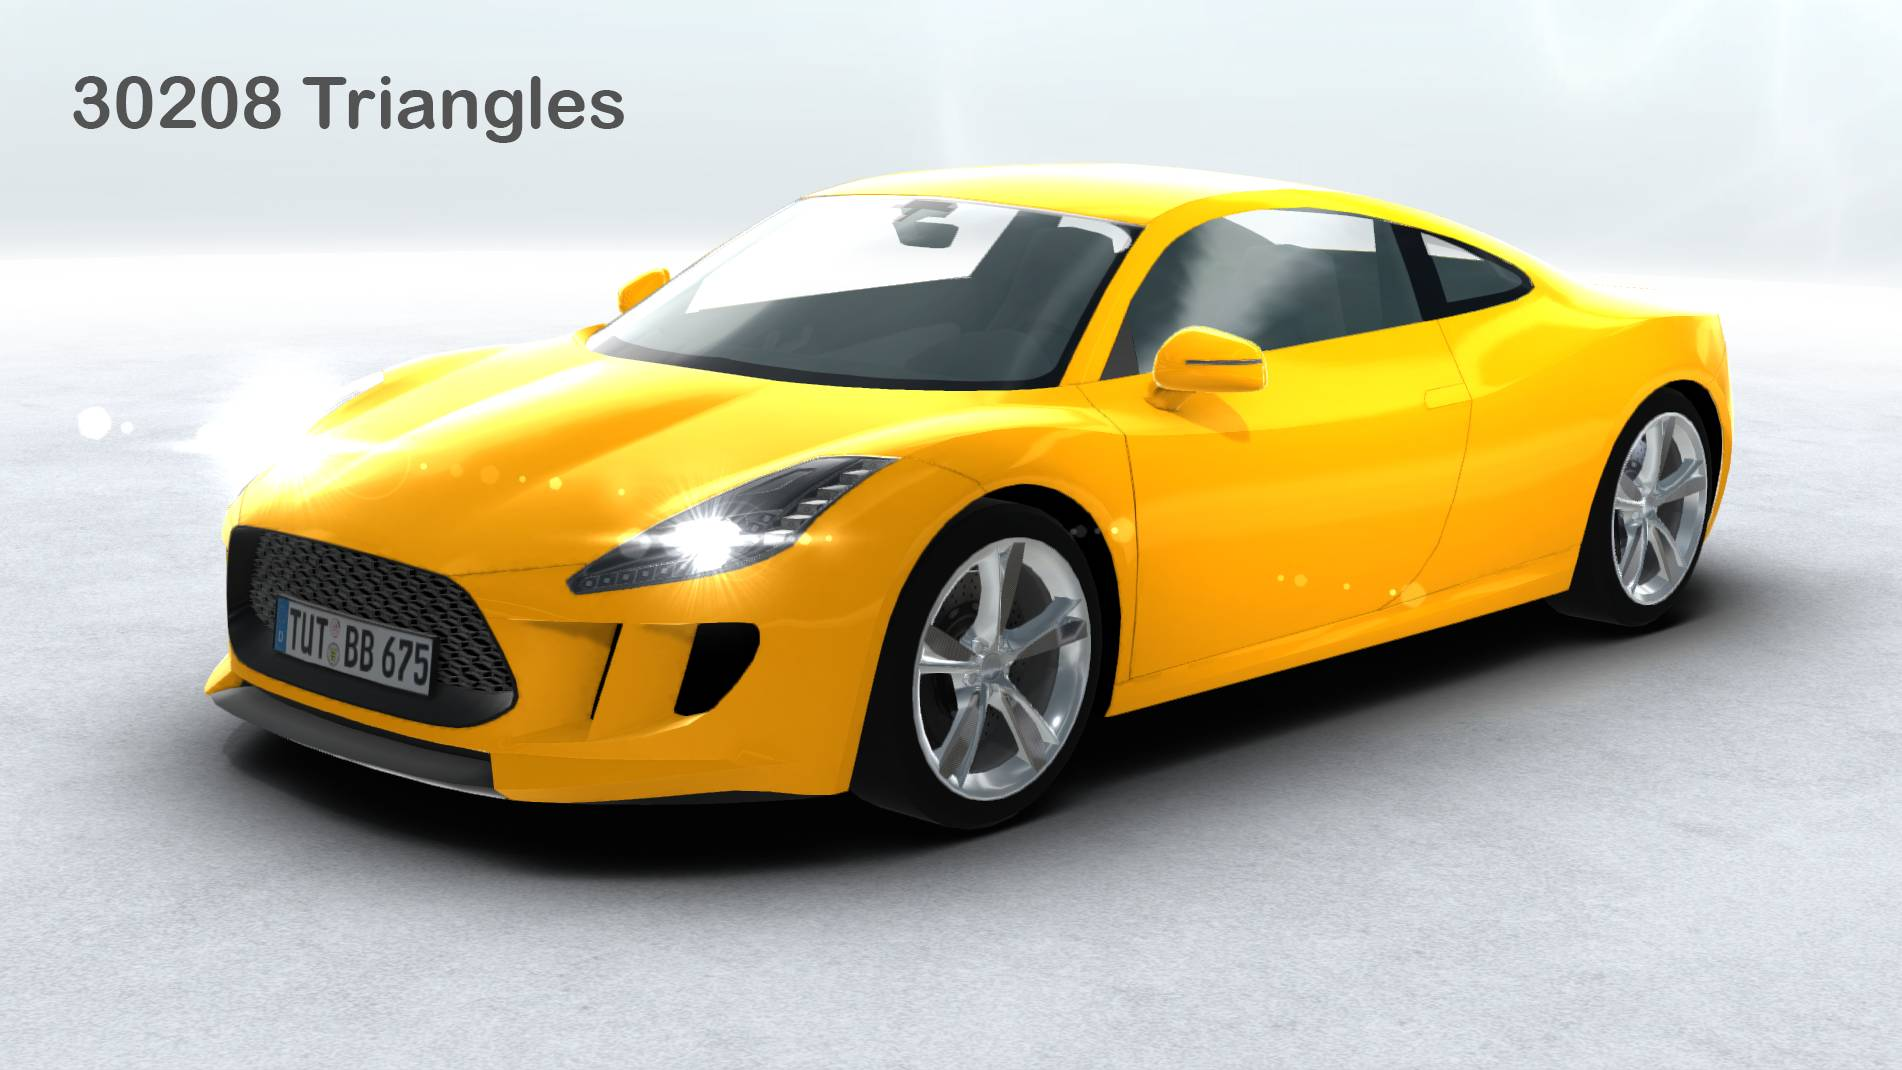 generic sports car realtime 3d model 3ds max fbx c4d lwo ma mb other obj 217742